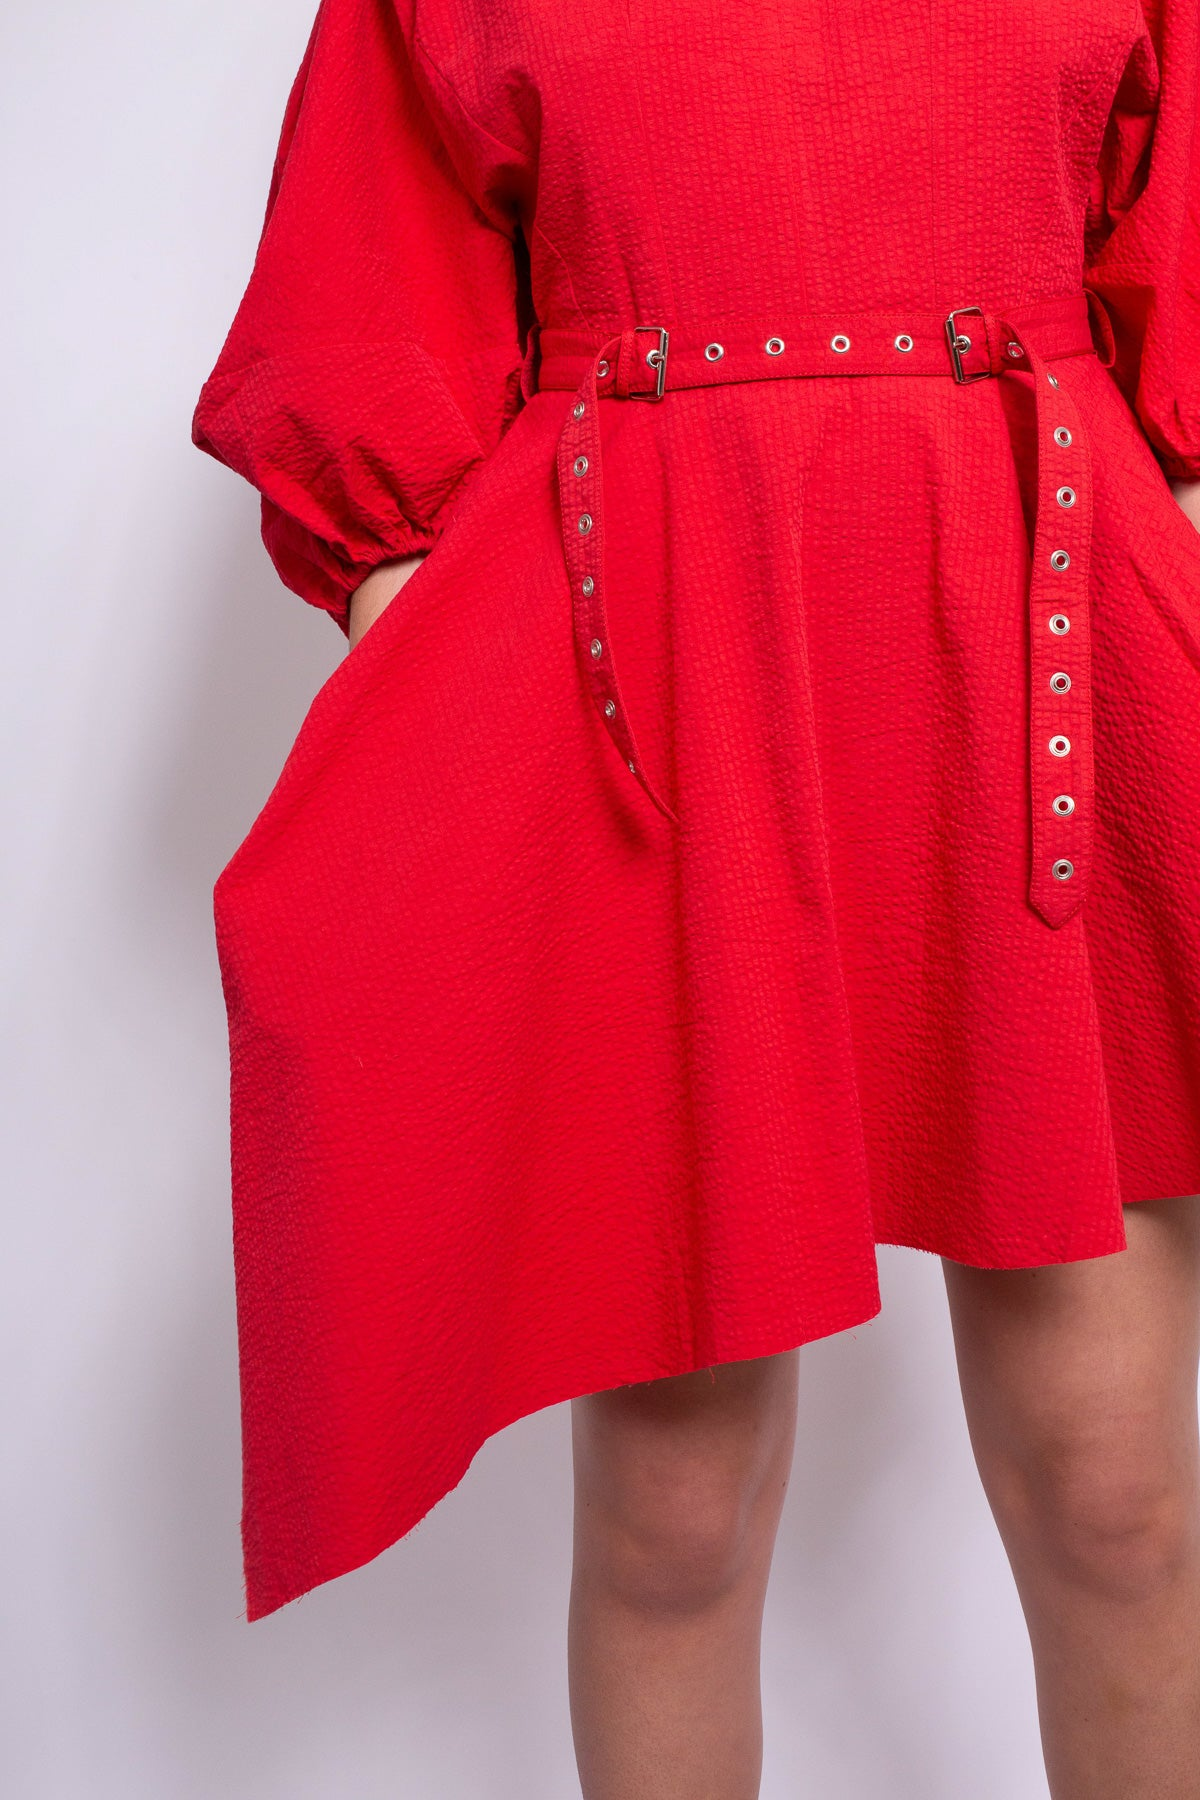 BALLOON SLEEVE DRESS IN RED - marques-almeida